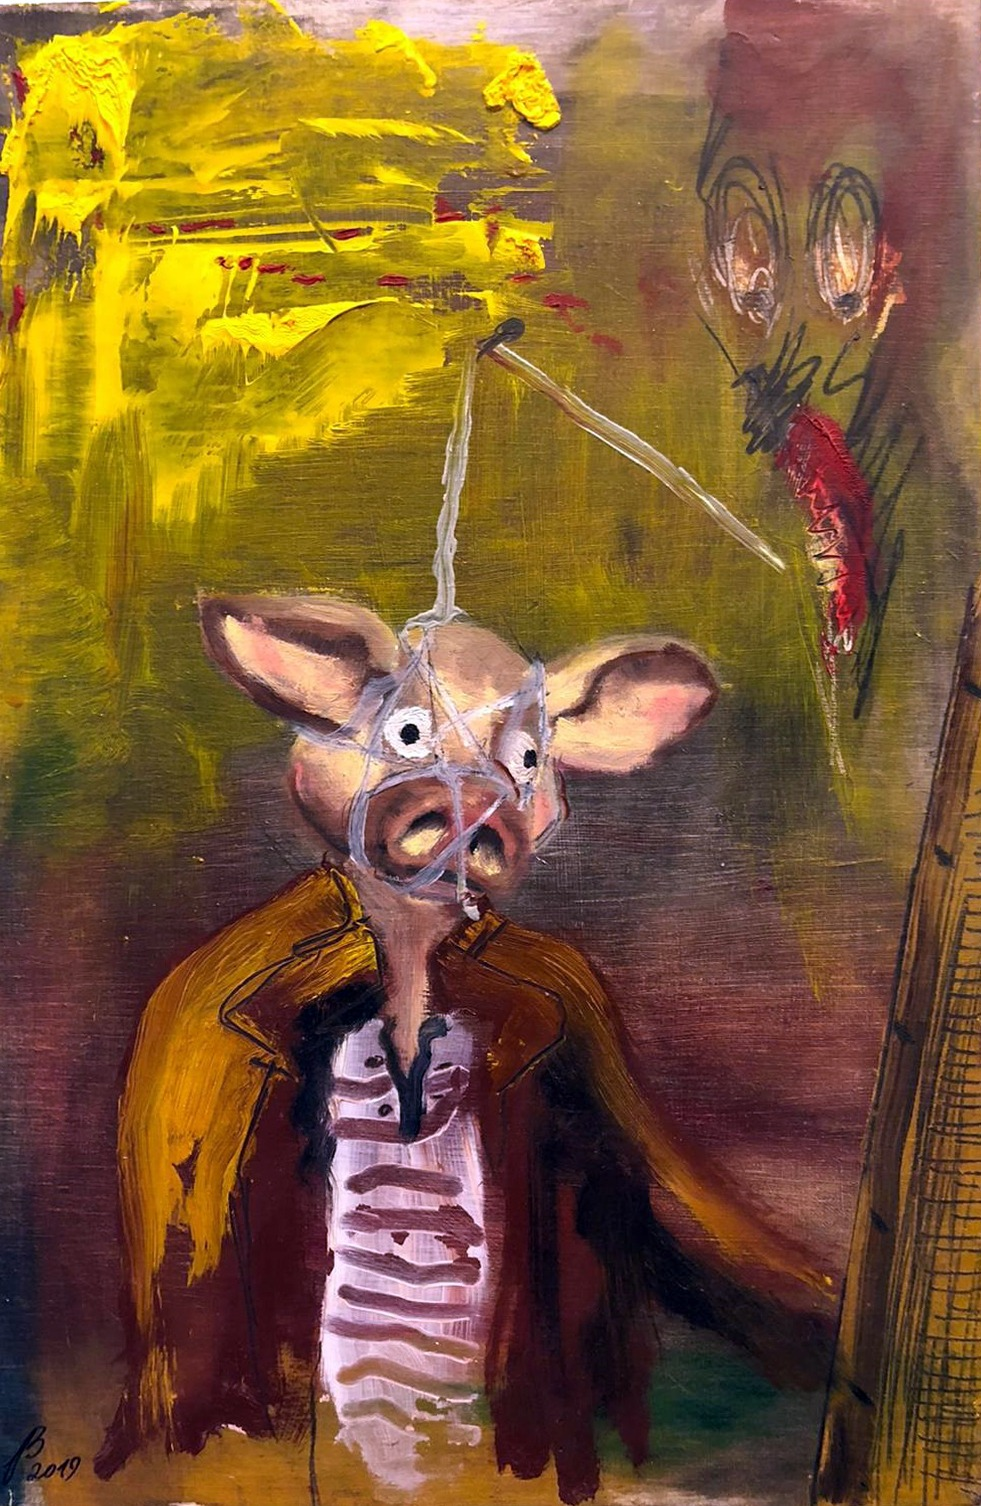 Pig Painter and He's Haunted by a McDemon